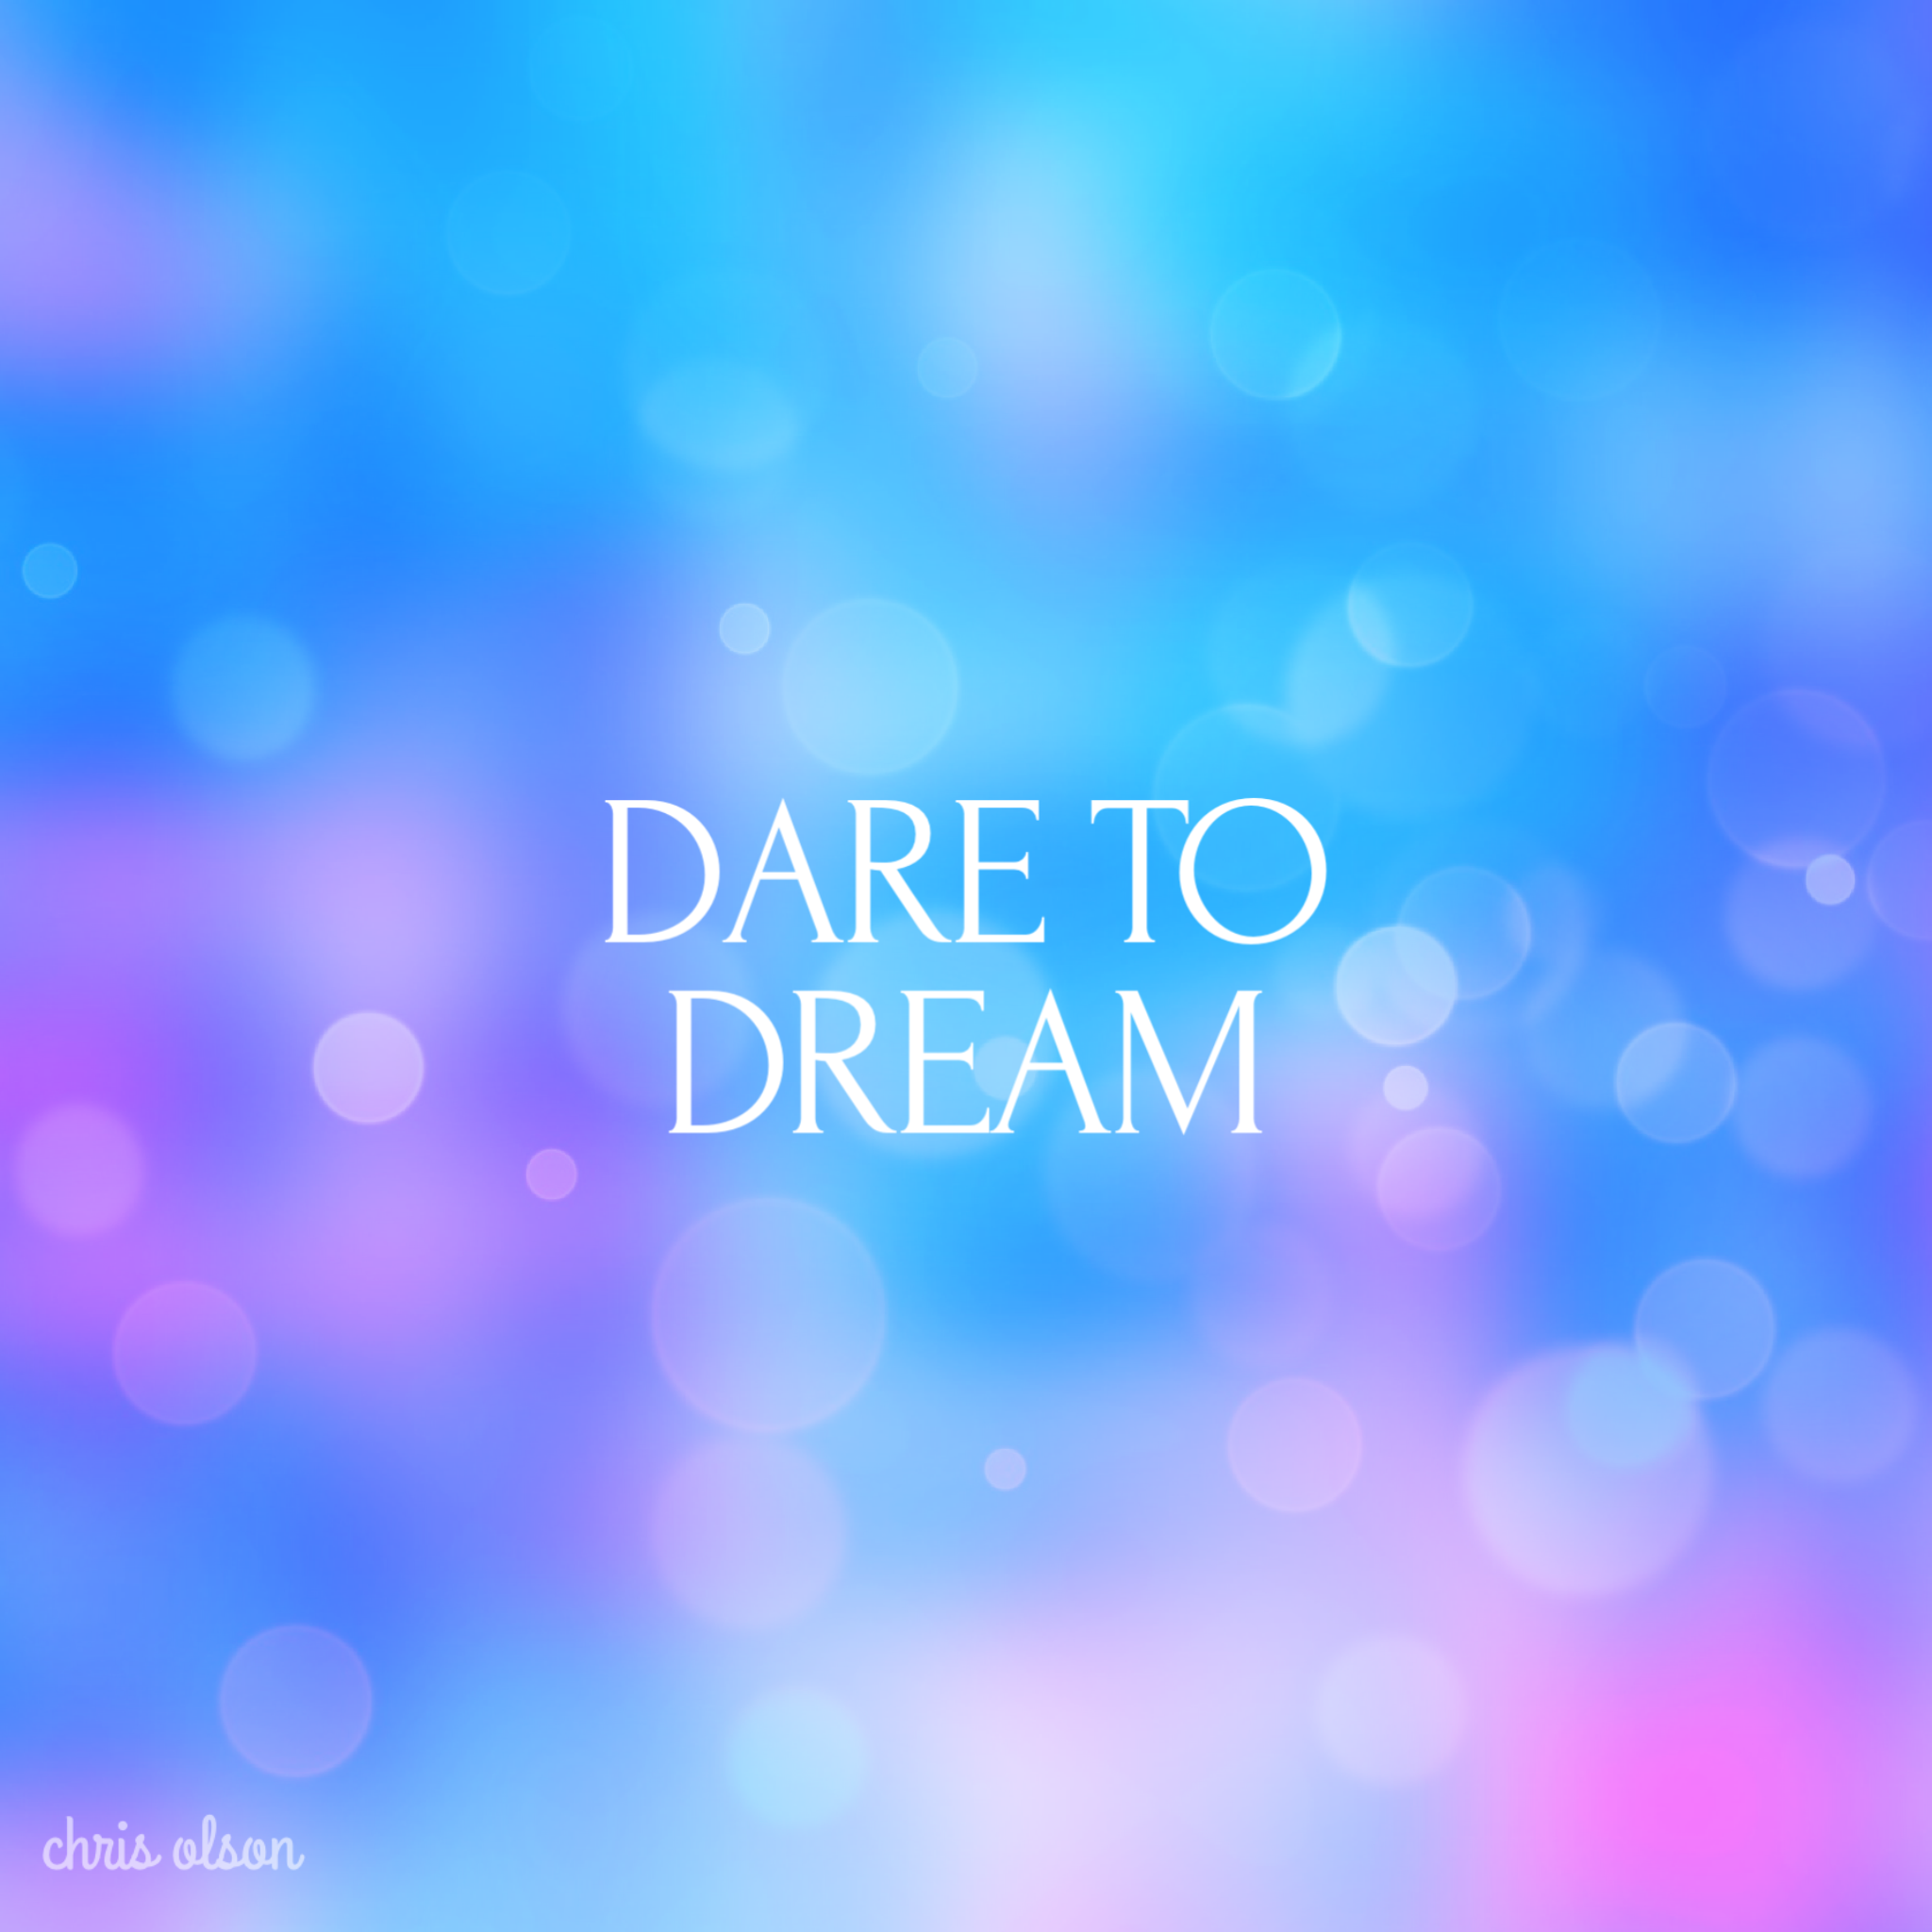 Dare to dream // Inspirational quote // Design by Chris Olson